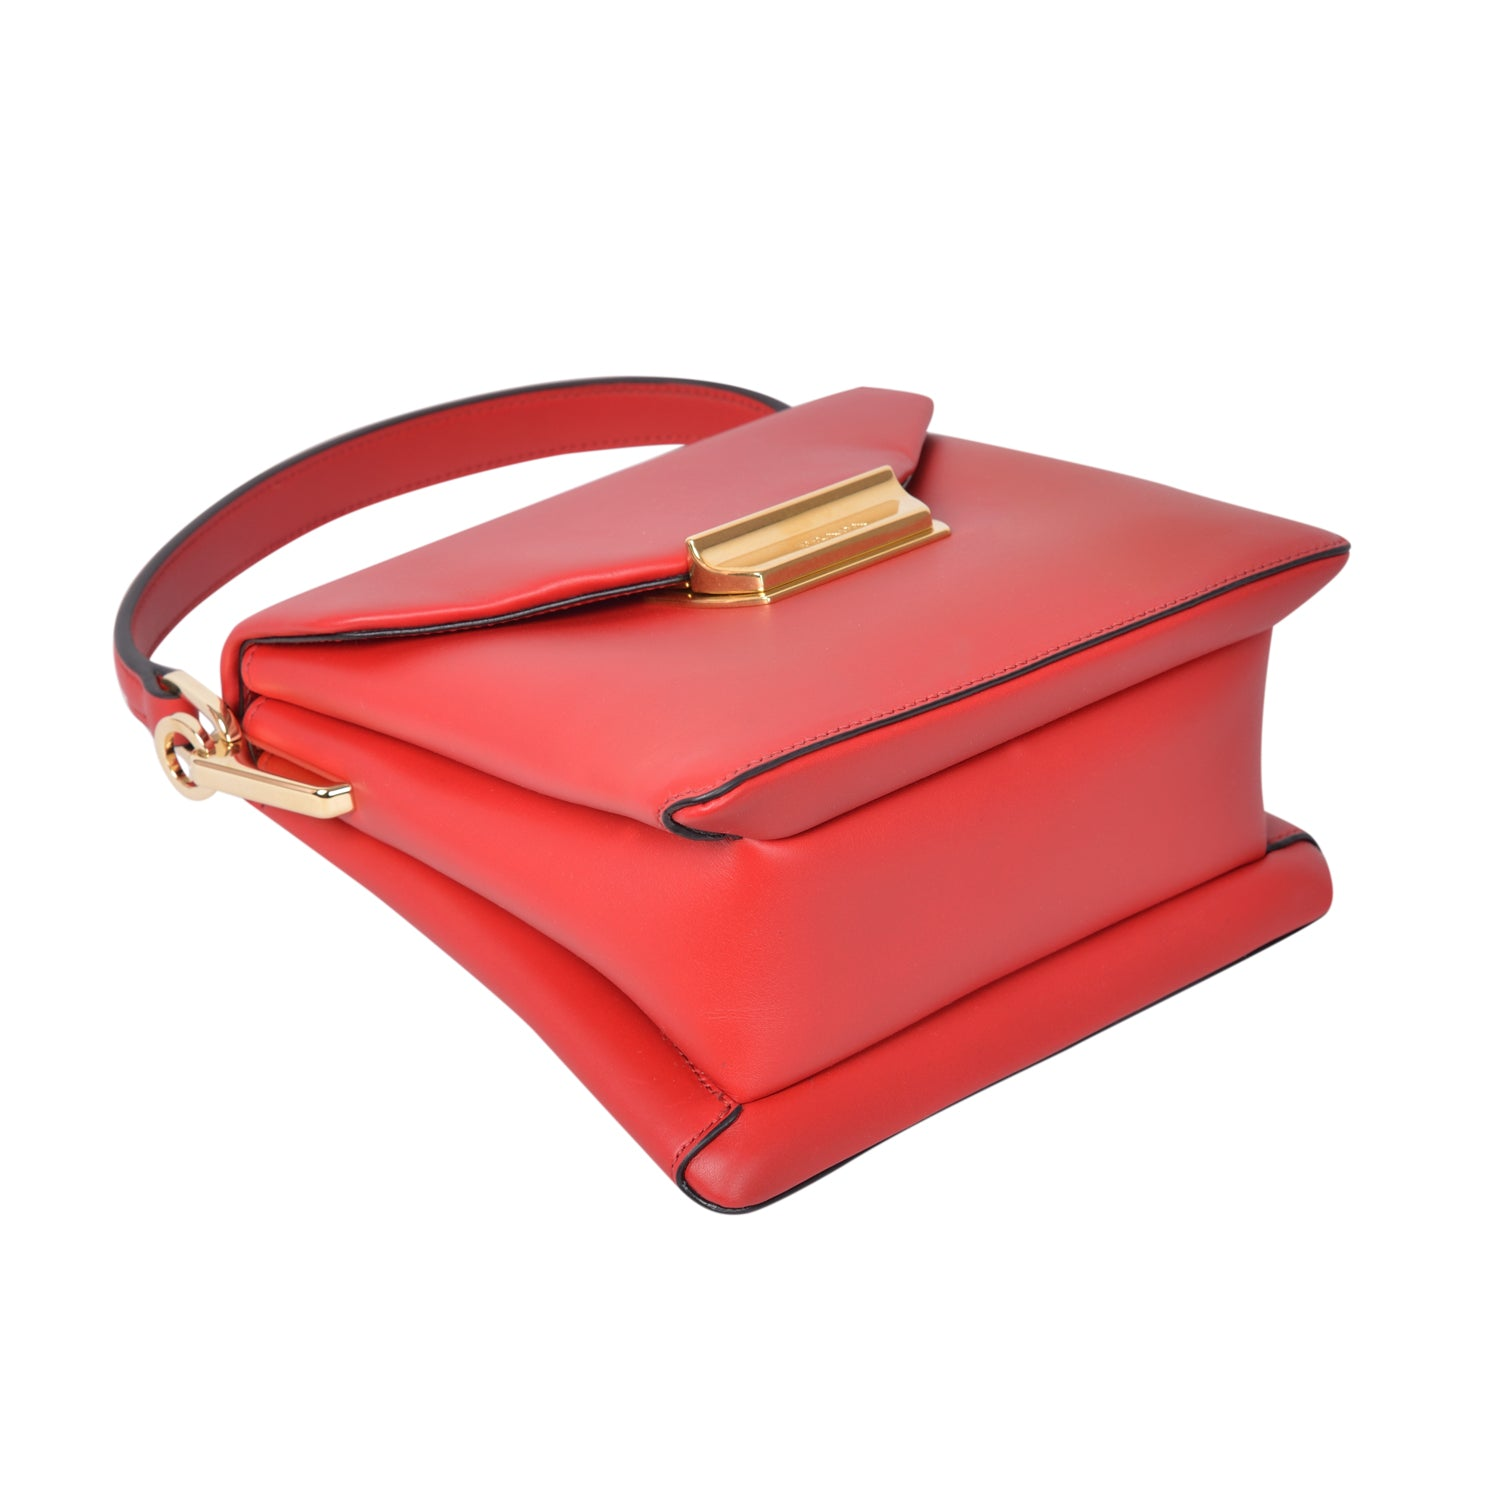 Prada red ingrid red small top handle bag in nappa leather. | Shop Luxury Handbag Online